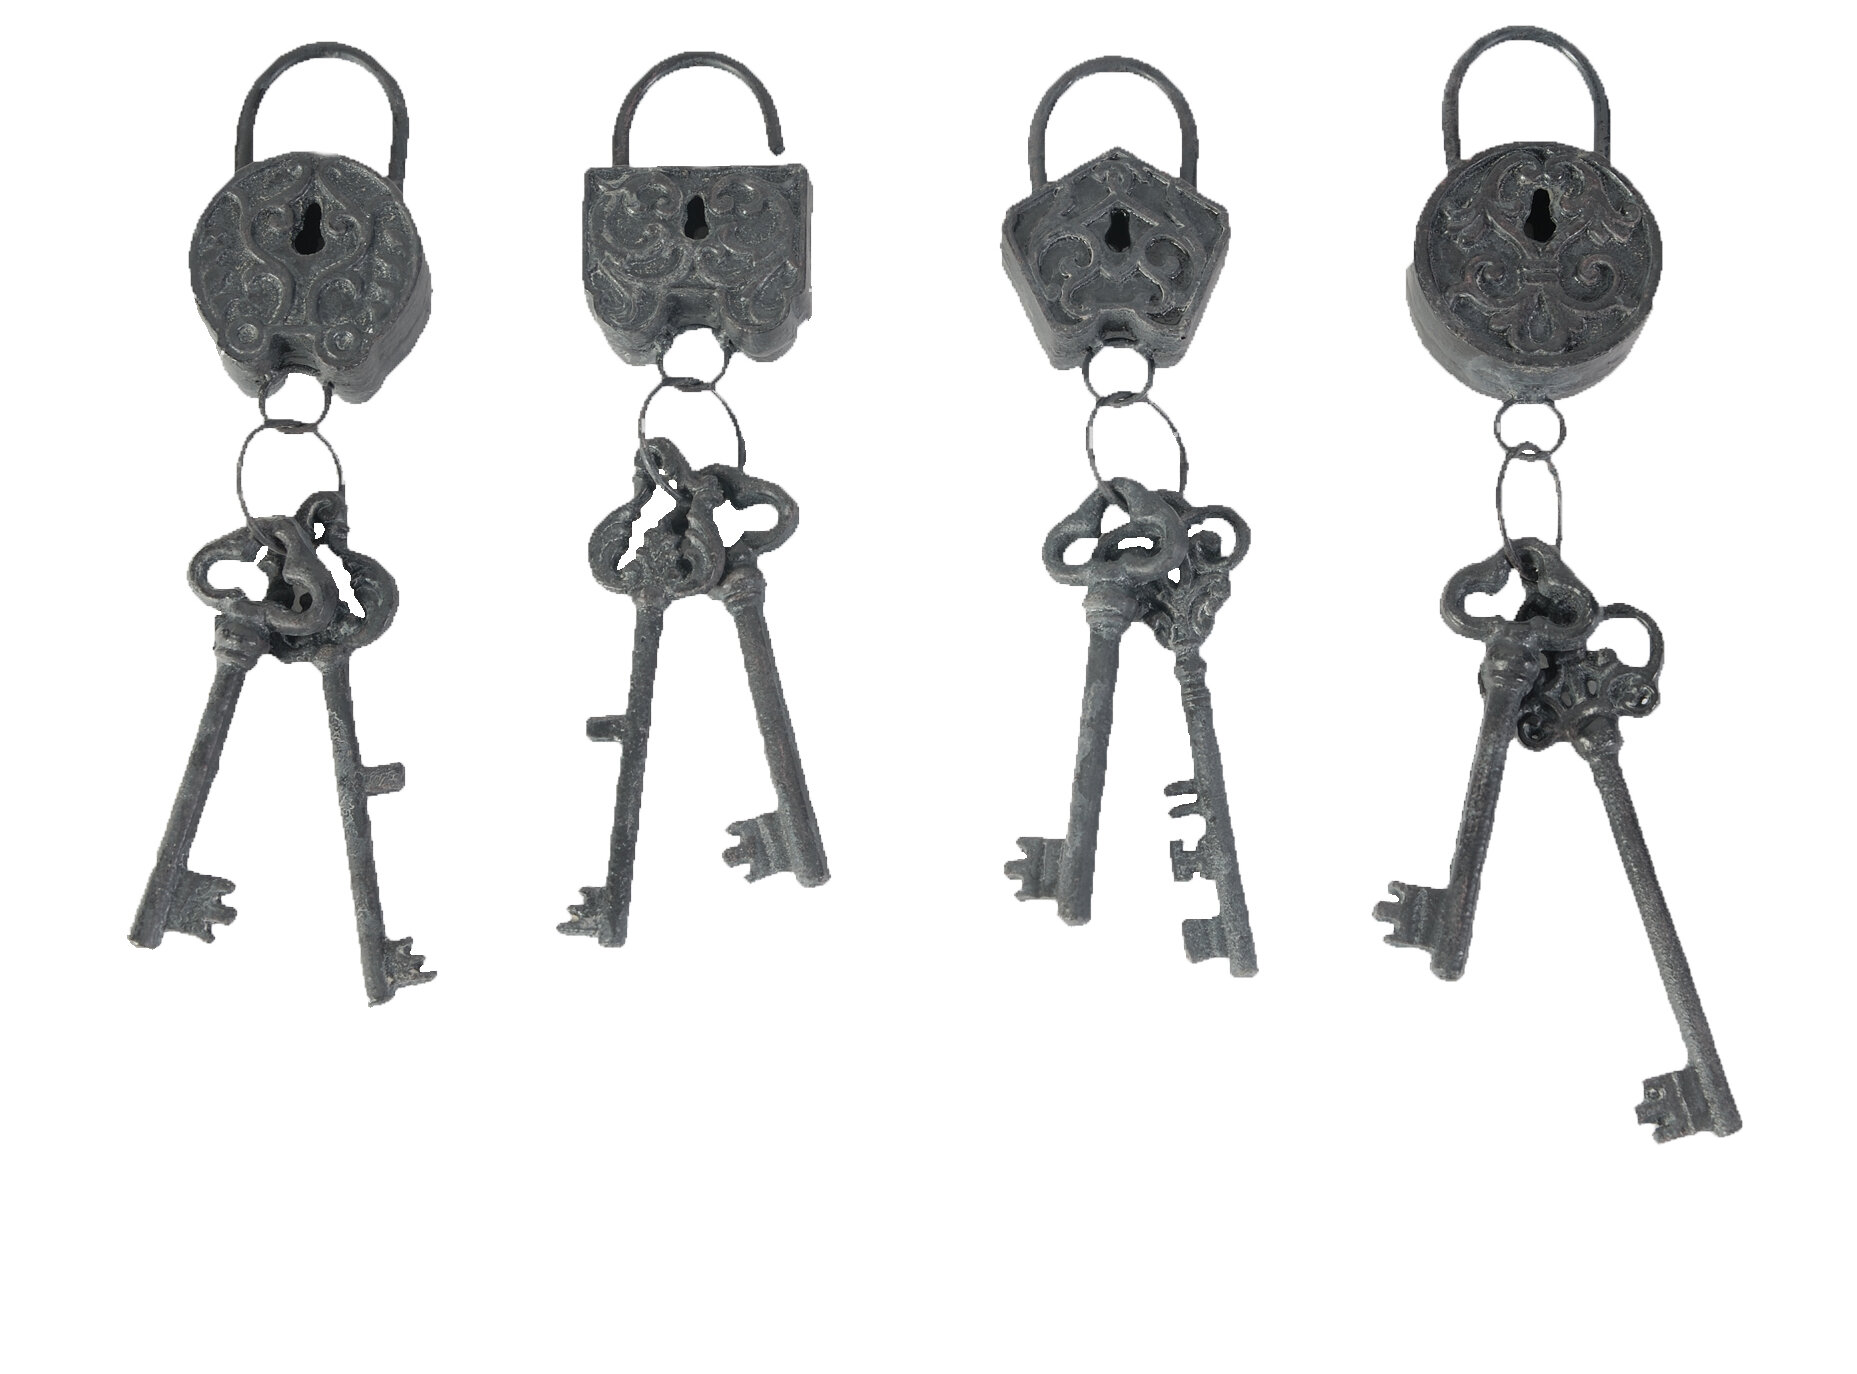 4 Piece Decorative Lock And Key Sets Wall Décor Inside Black Metal Key Wall Decor (View 17 of 30)